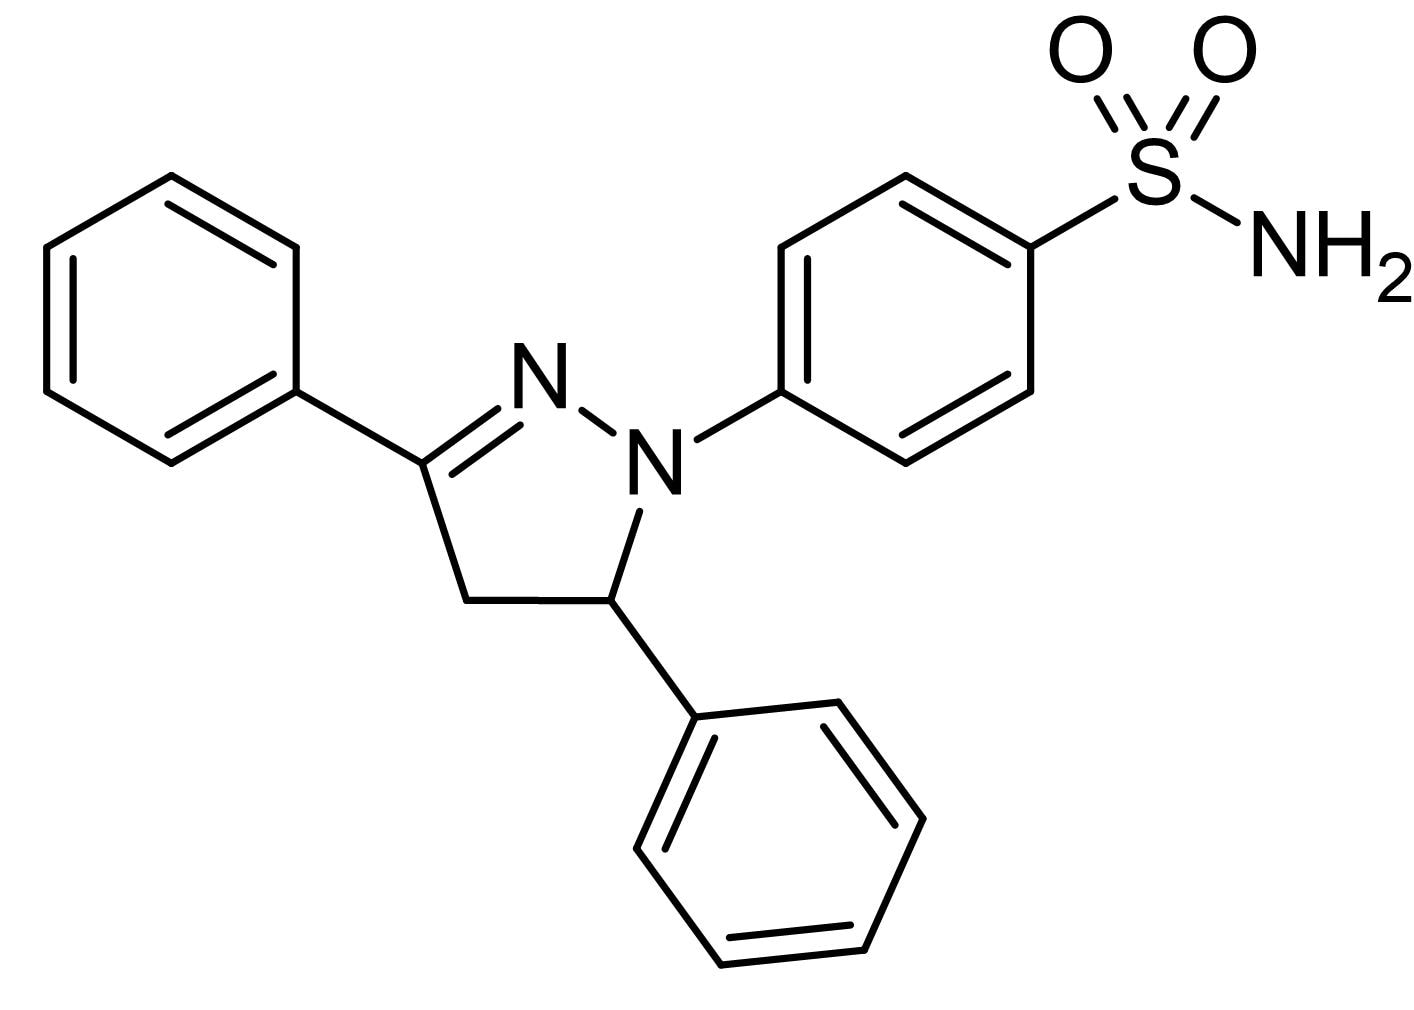 Chemical Structure - MLS000573151 (MLS-573151), Cdc42 inhibitor (ab141470)